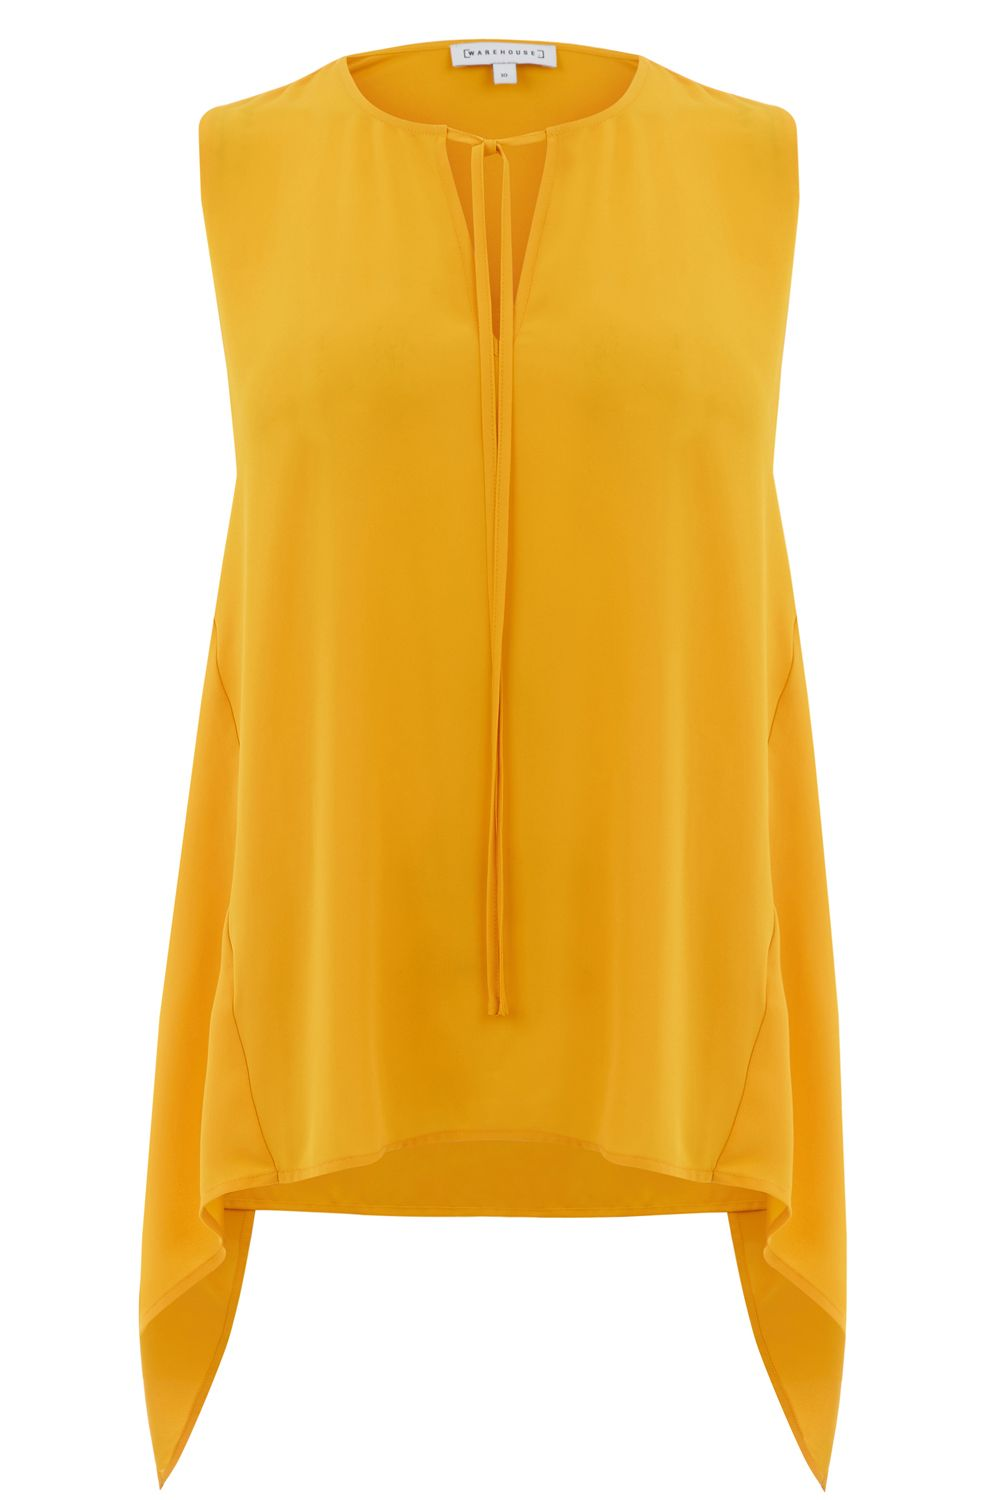 Warehouse Hanky Hem Shell Top, Yellow